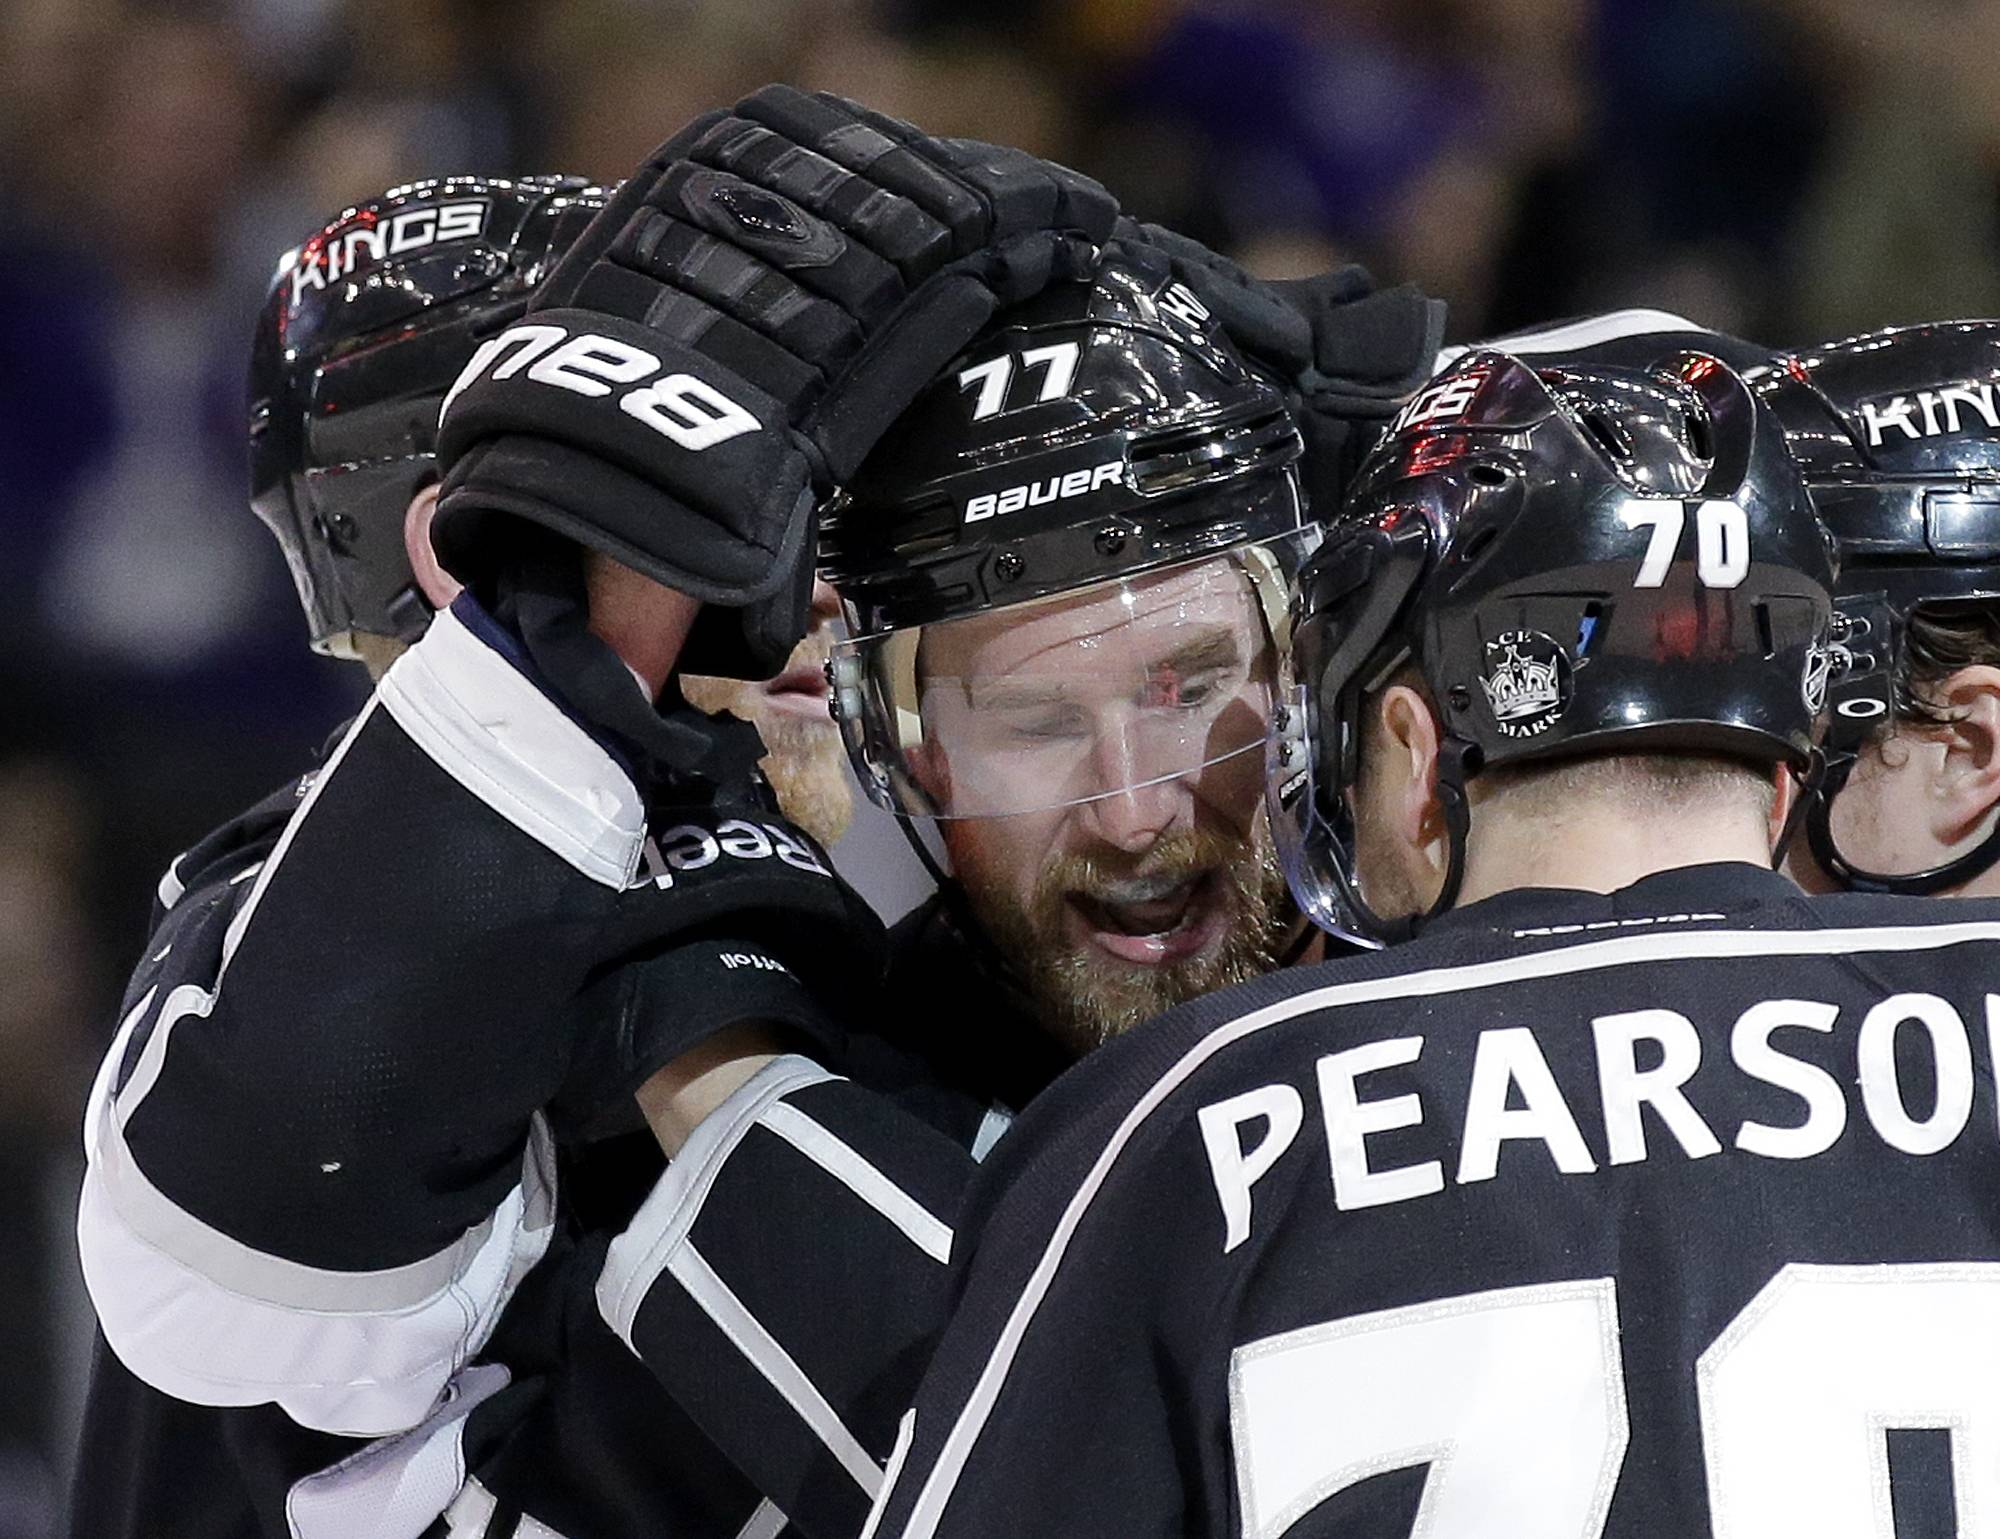 Los Angeles Kings center Jeff Carter (77) celebrates his goal against the Chicago Blackhawks with Tanner Pearson during the second period of Game 3 of the Western Conference finals of the NHL hockey Stanley Cup playoffs in Los Angeles, Saturday, May 24, 2014.